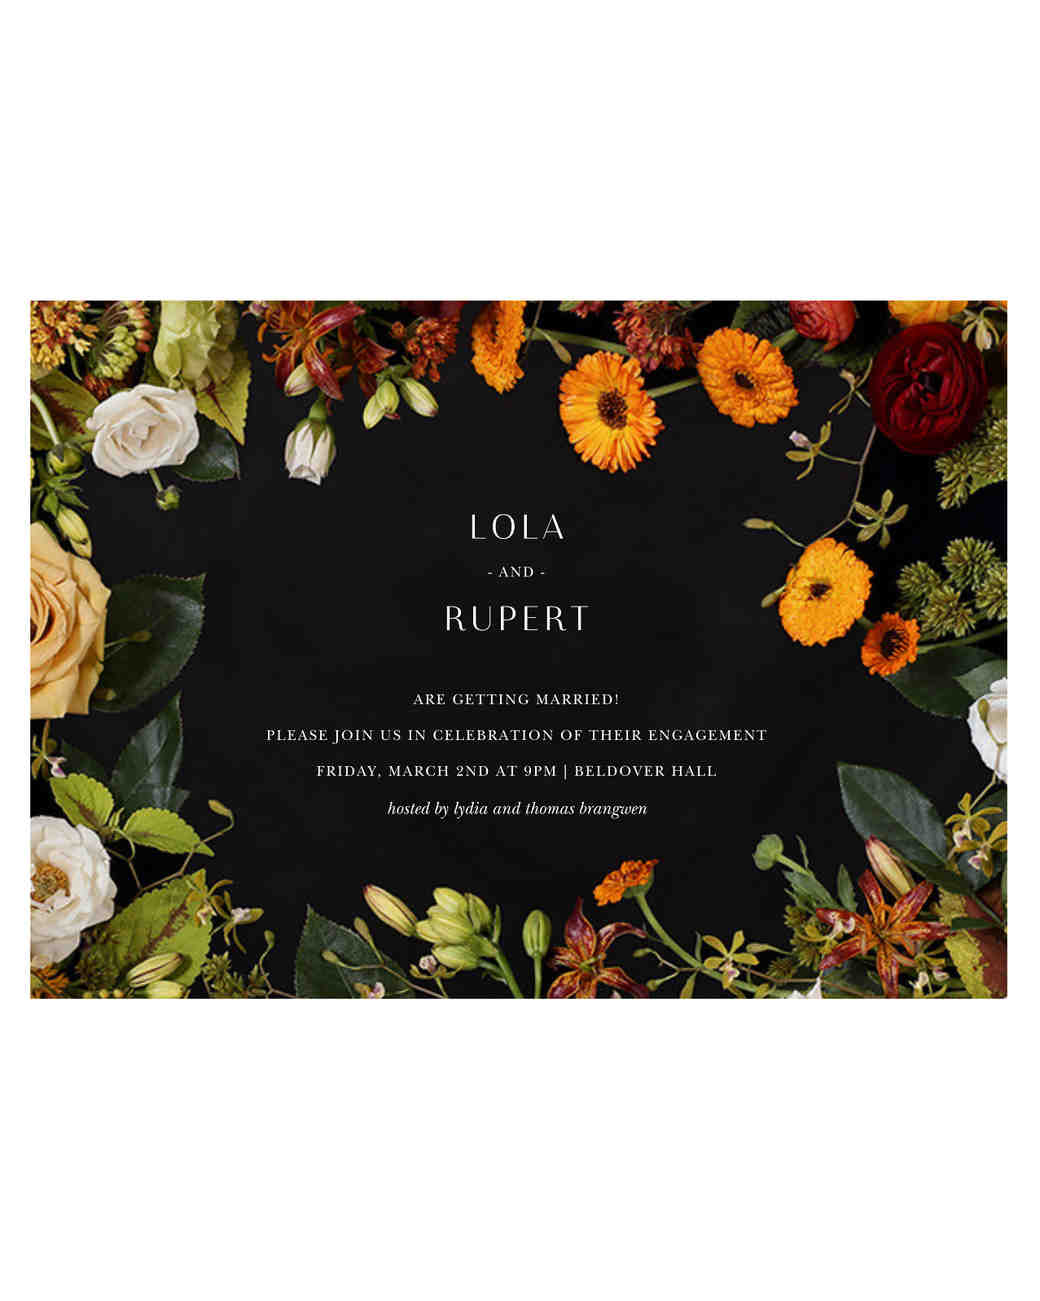 paperless engagement party invite fall colors